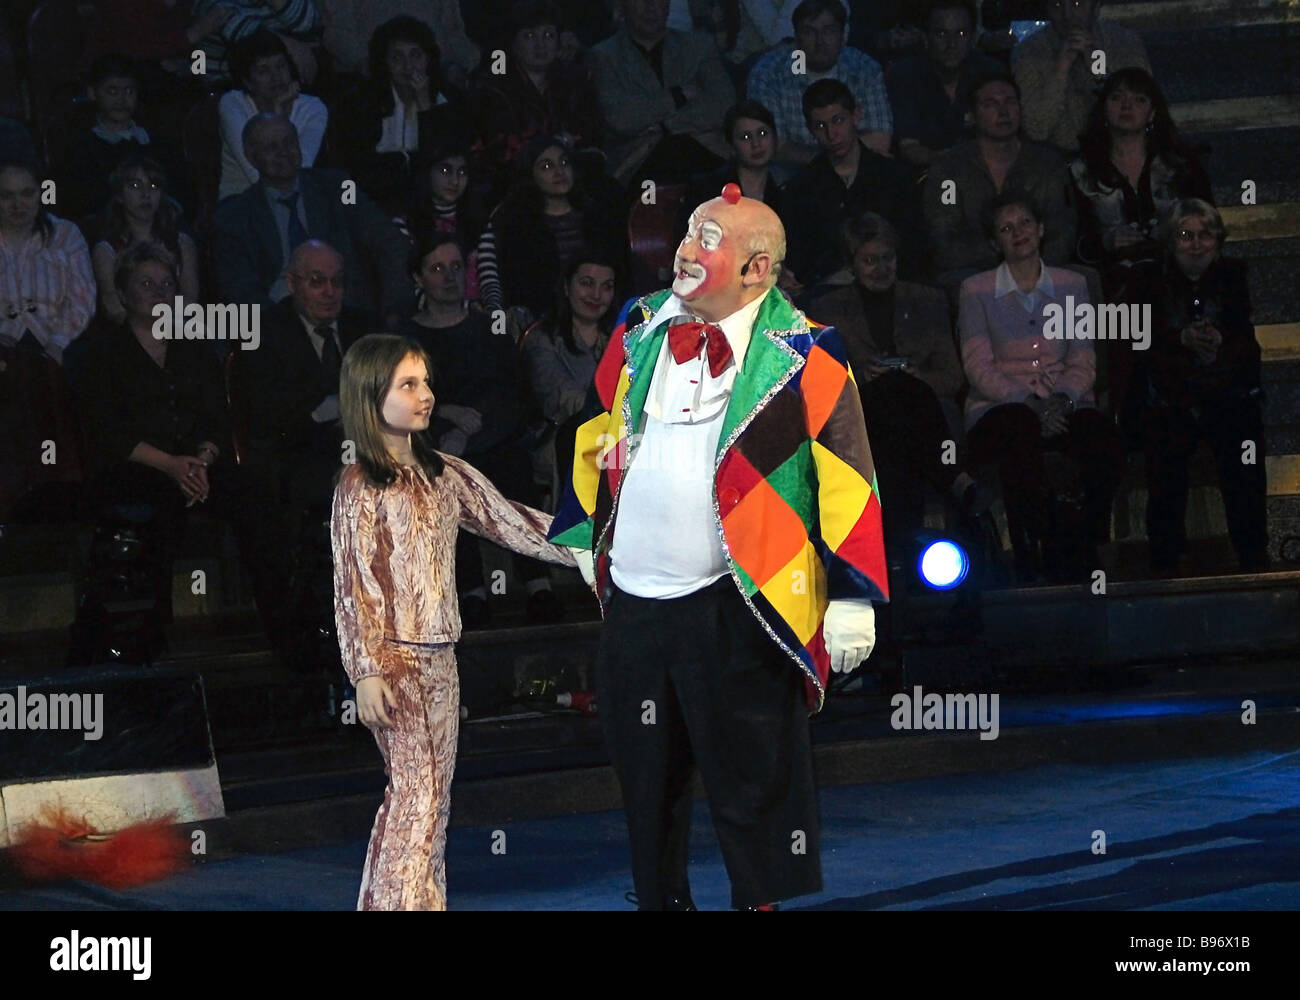 Mark Rudinshtein Kinotavr corporate group president appears as a clown in a performance 15 Years Since the World - Stock Image